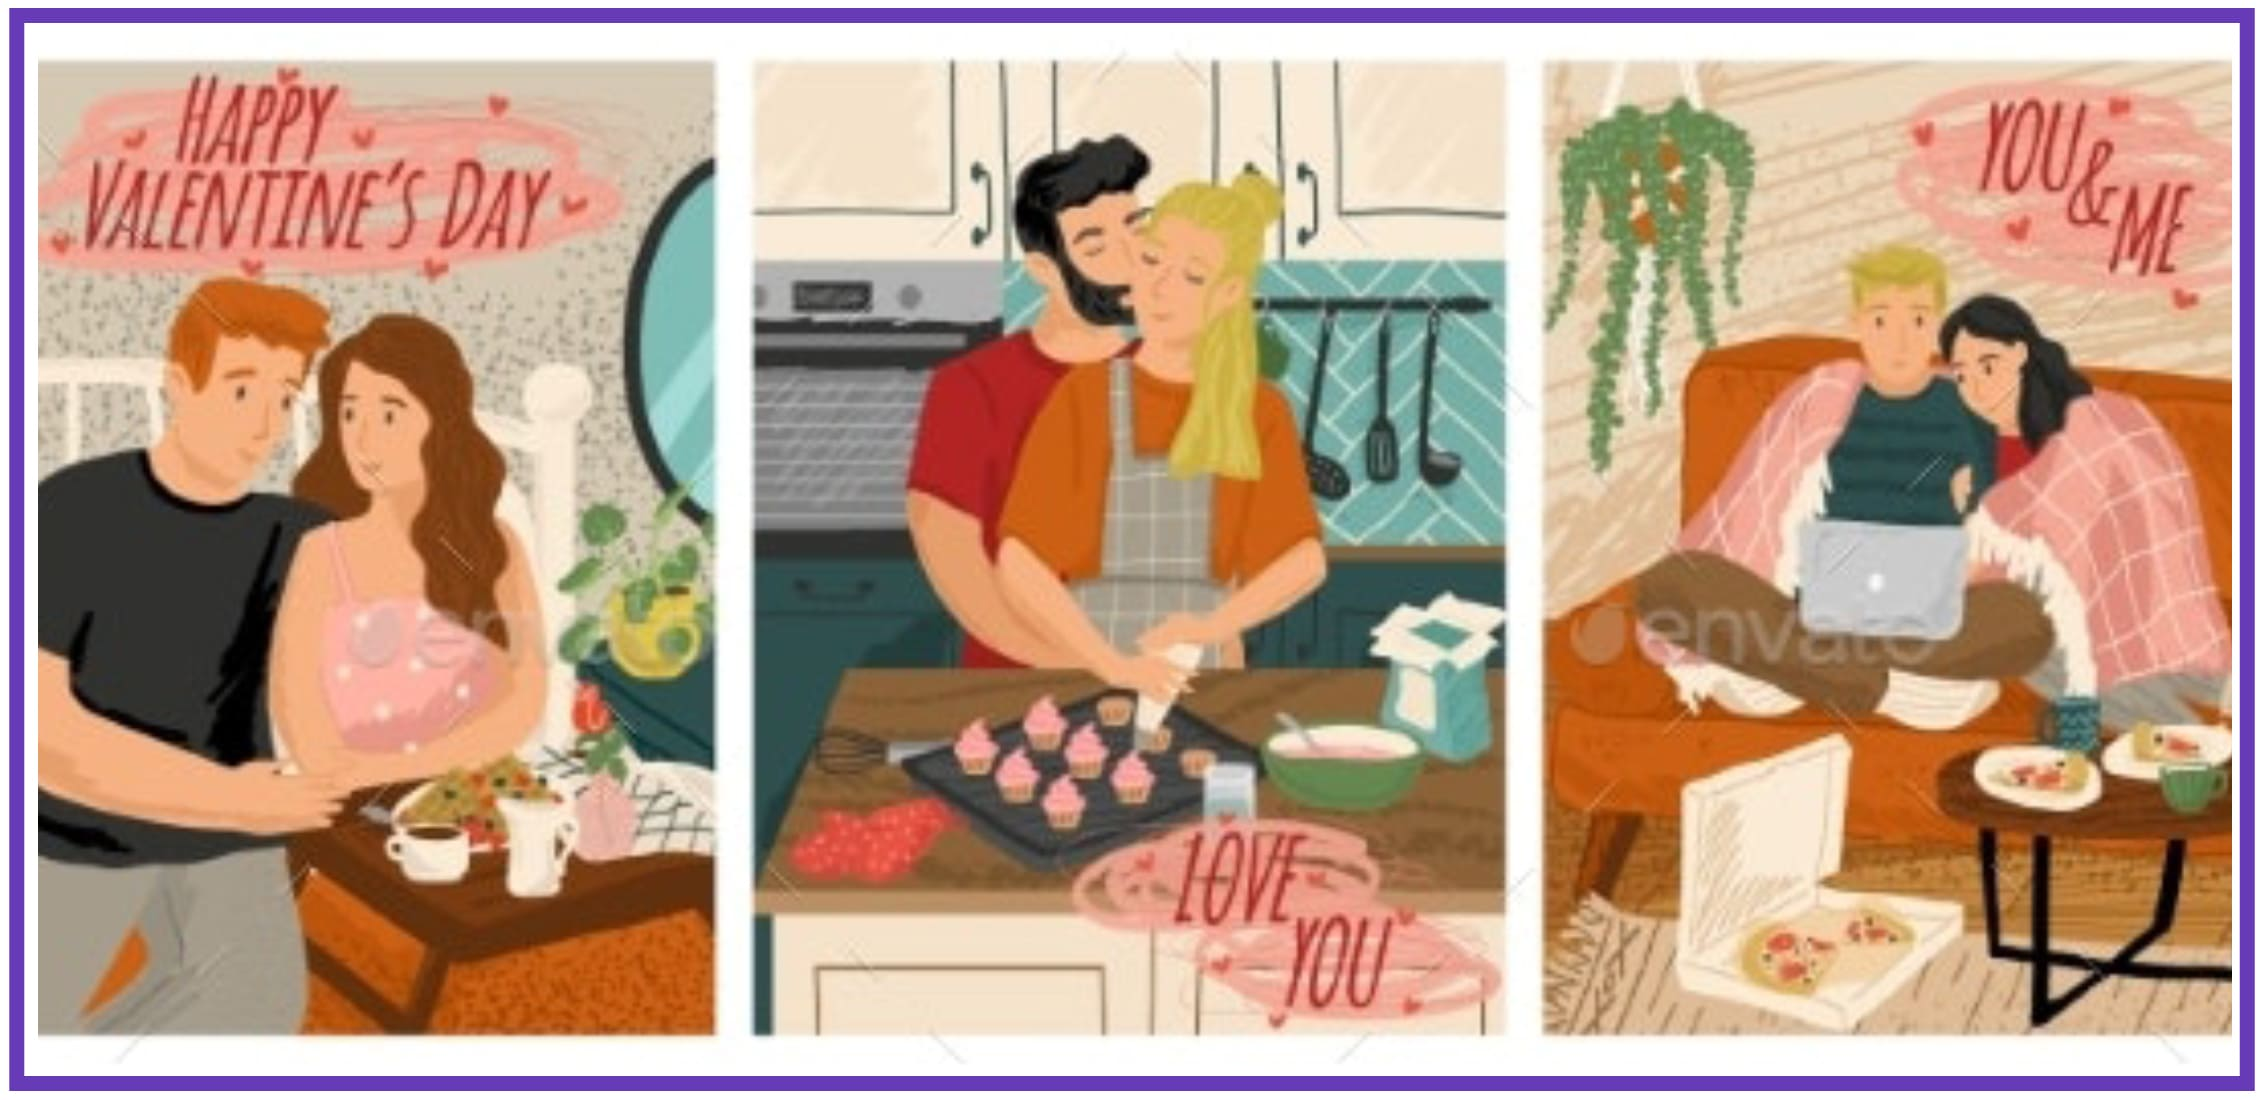 70+ Valentine's Day Cards 2021. Do not Forget about a Heartfelt Card for Your Valentine - valentines day card 50